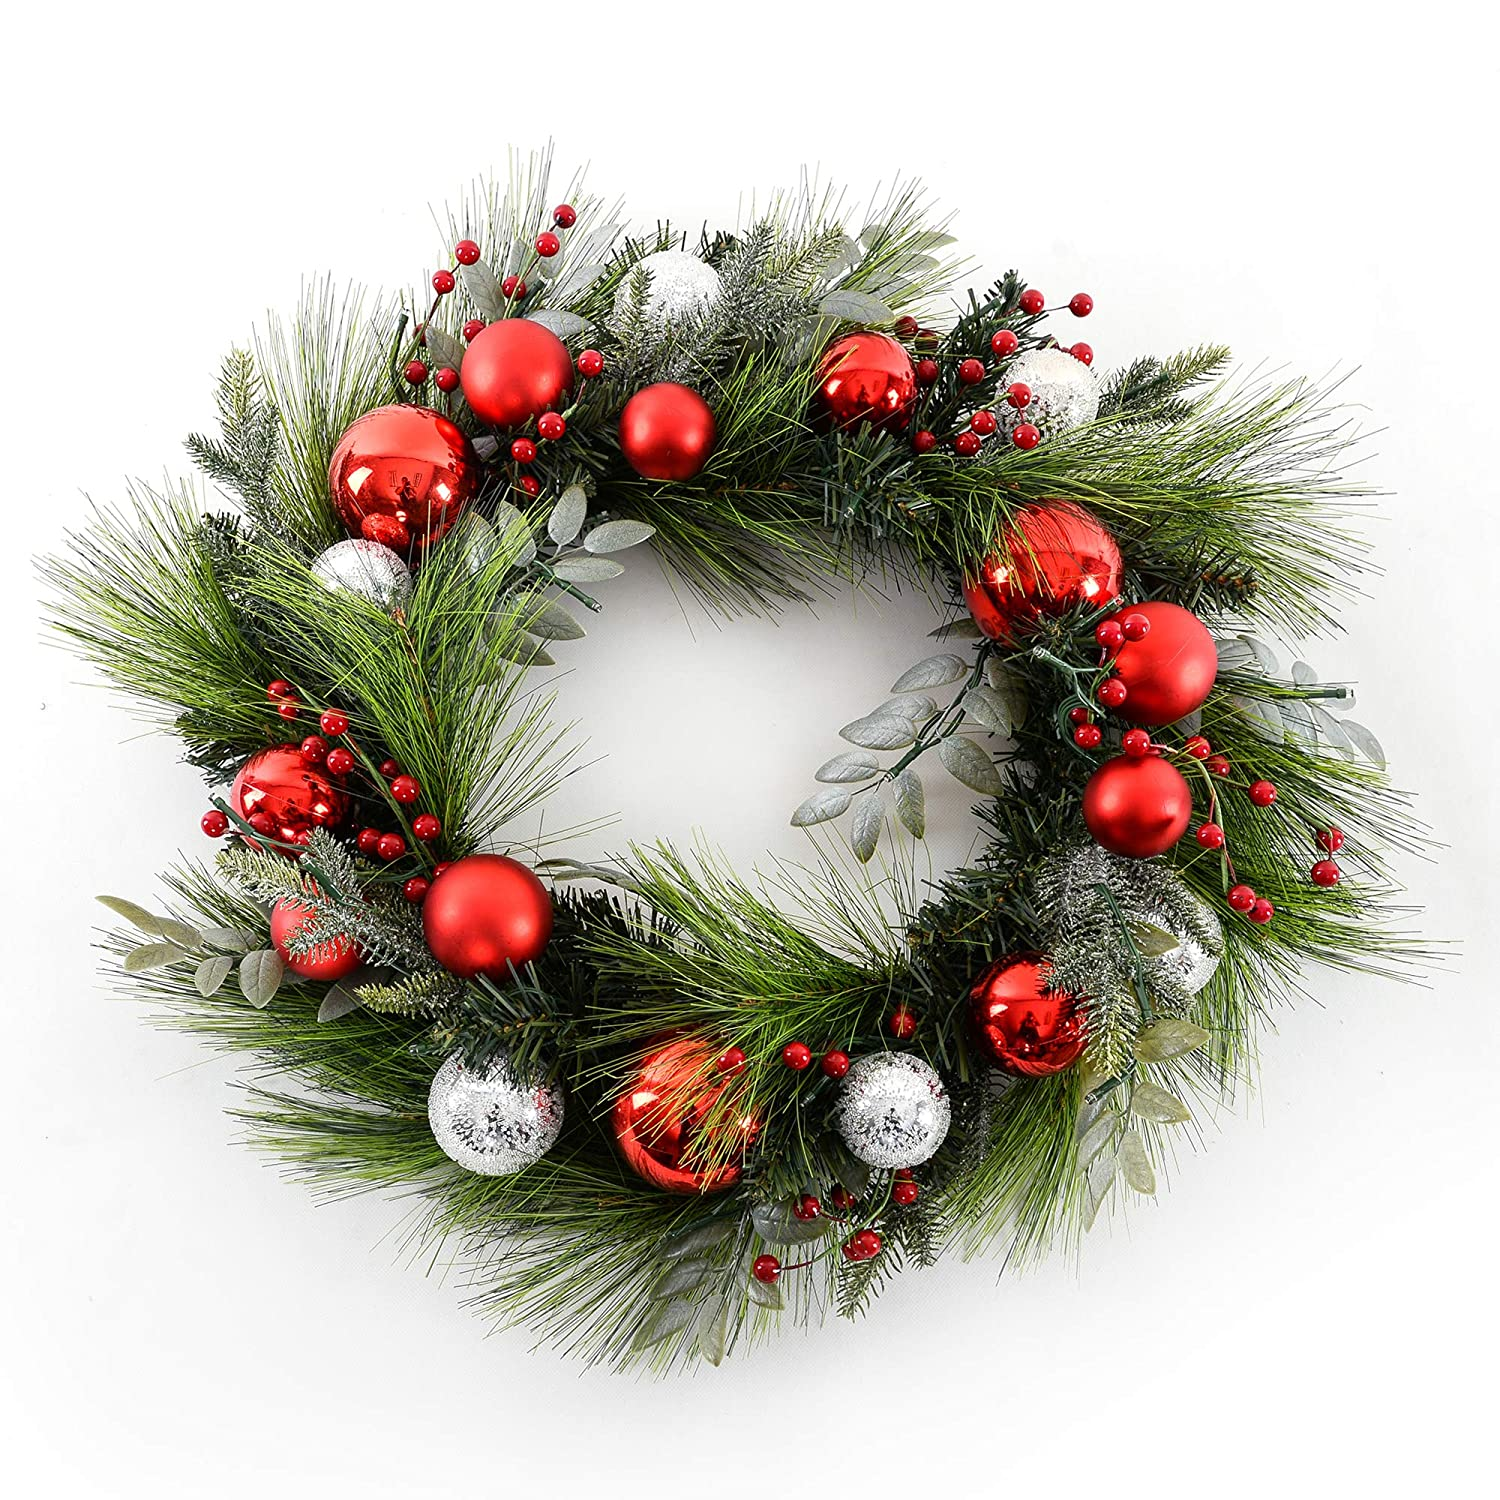 24 Inch Battery Operated Martha Stewart Red Ornament and Berry Pre-Lit Artificial Holiday Wreath Clear Lights